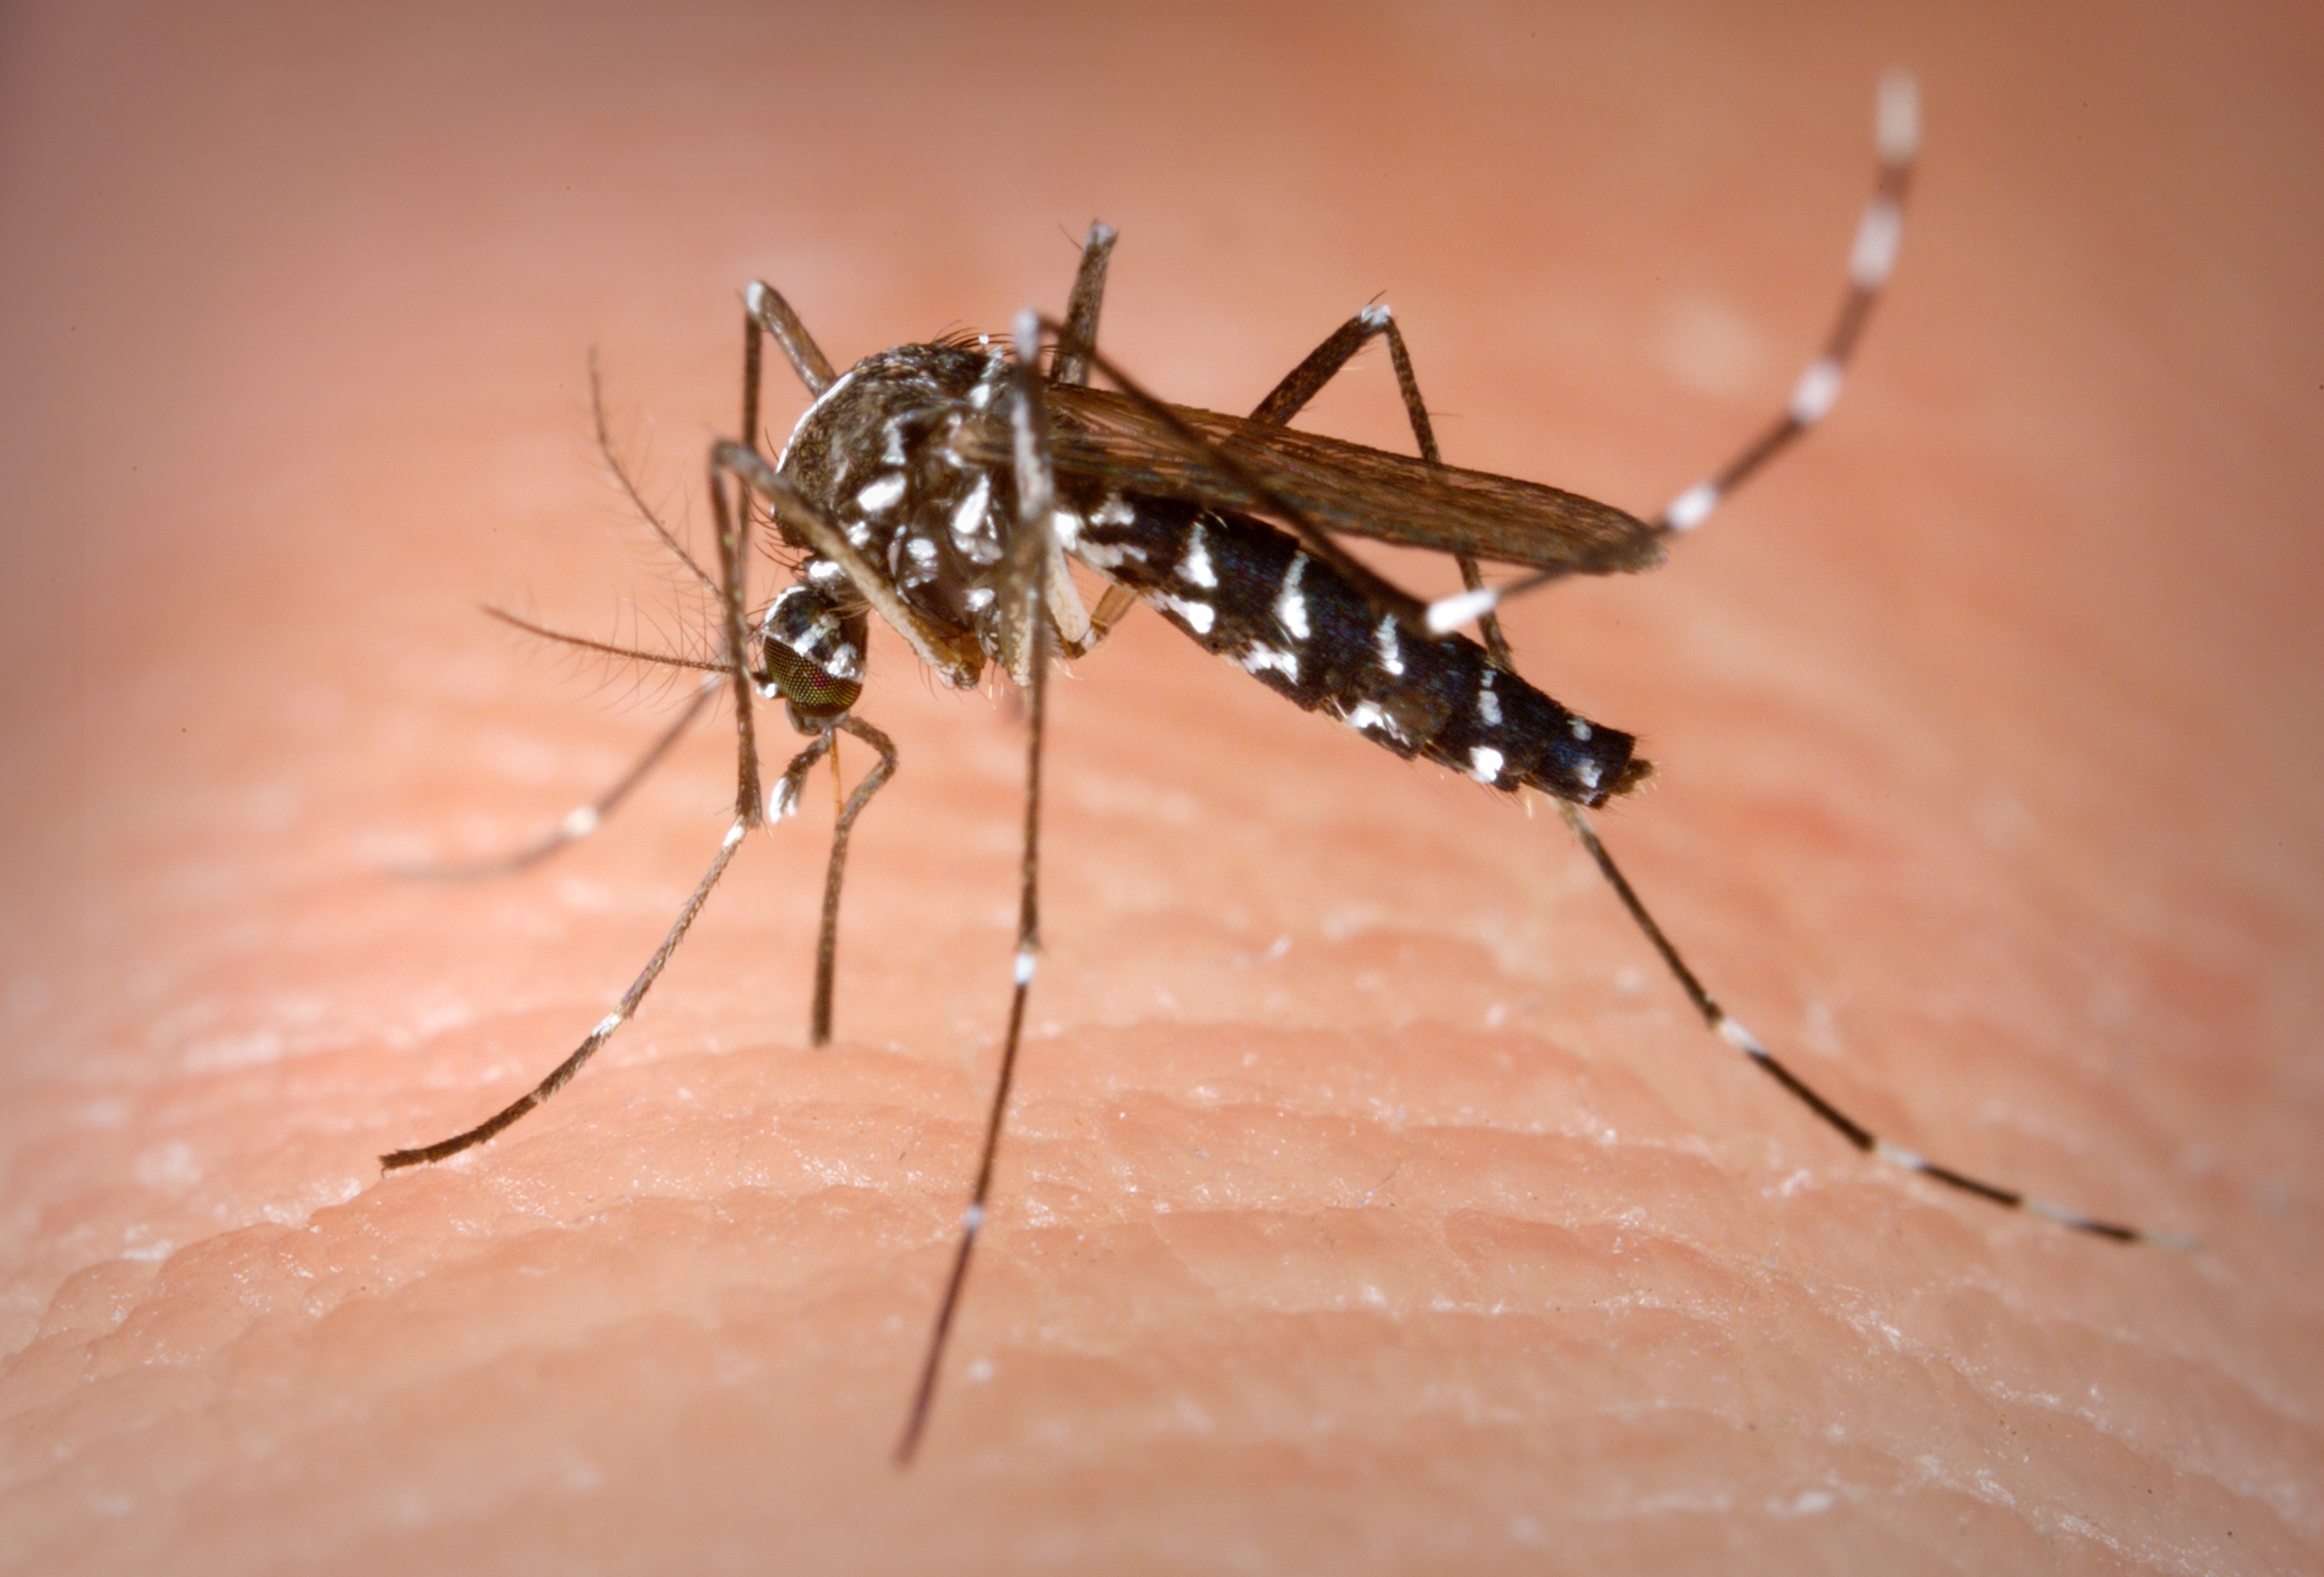 How to Limit Mosquito Exposure